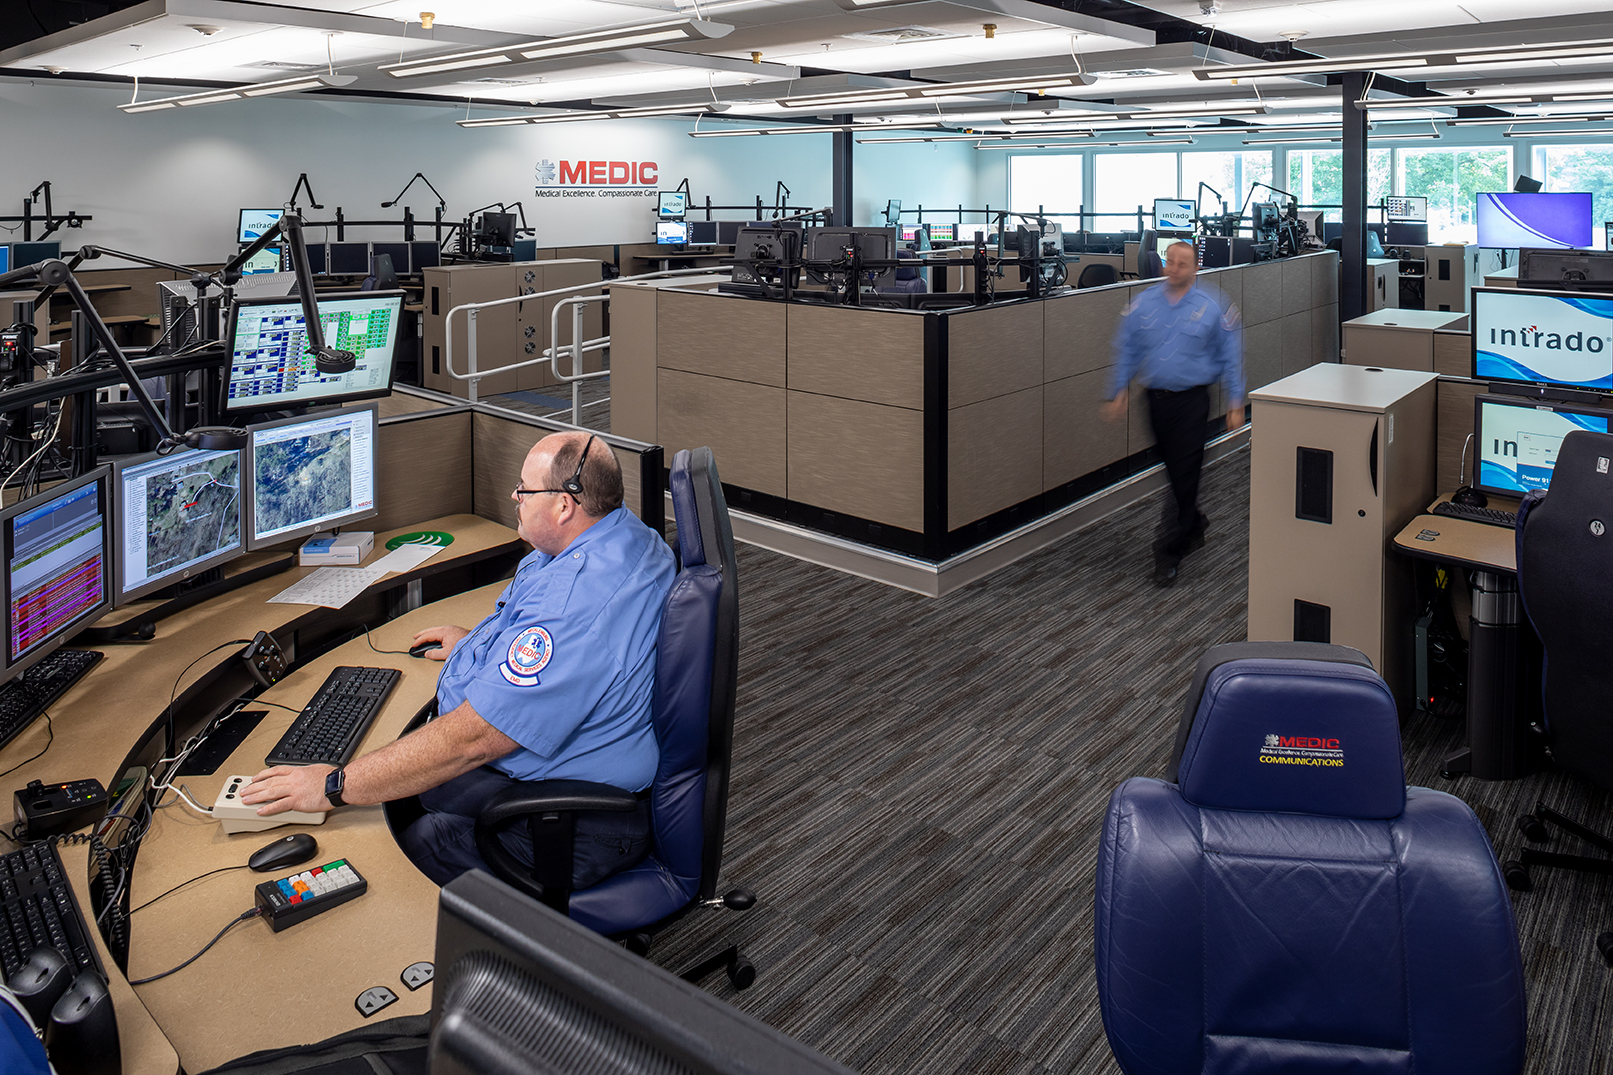 ADW-Public-Safety-MEDIC-Headquarters-Charlotte-NC-Communications.jpg